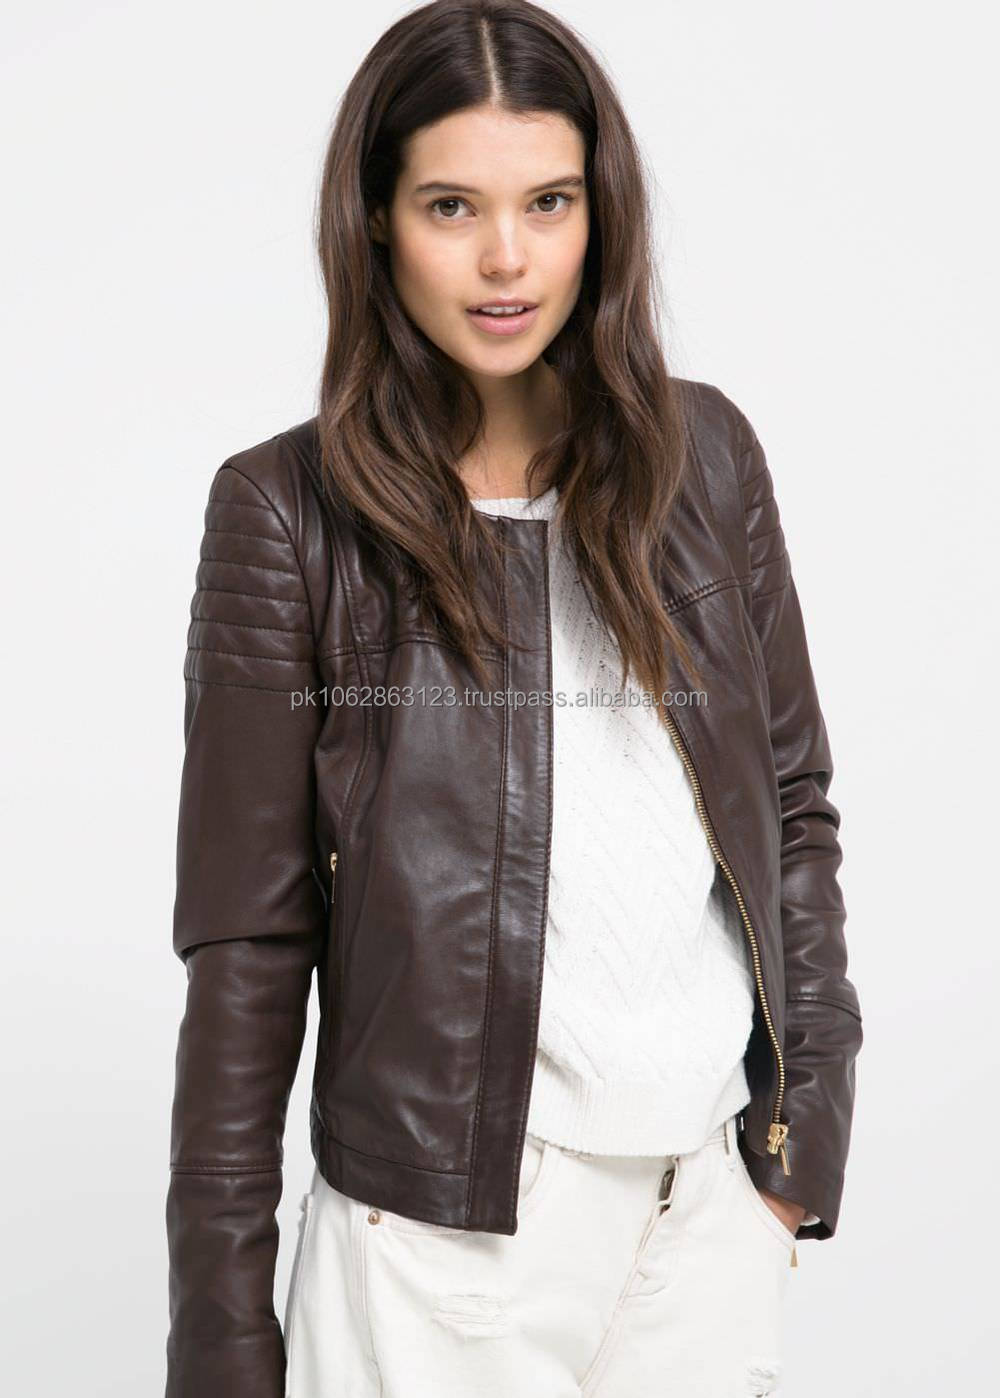 Black Color Leather Jackets For Ladies Buy Fashion European Ladies